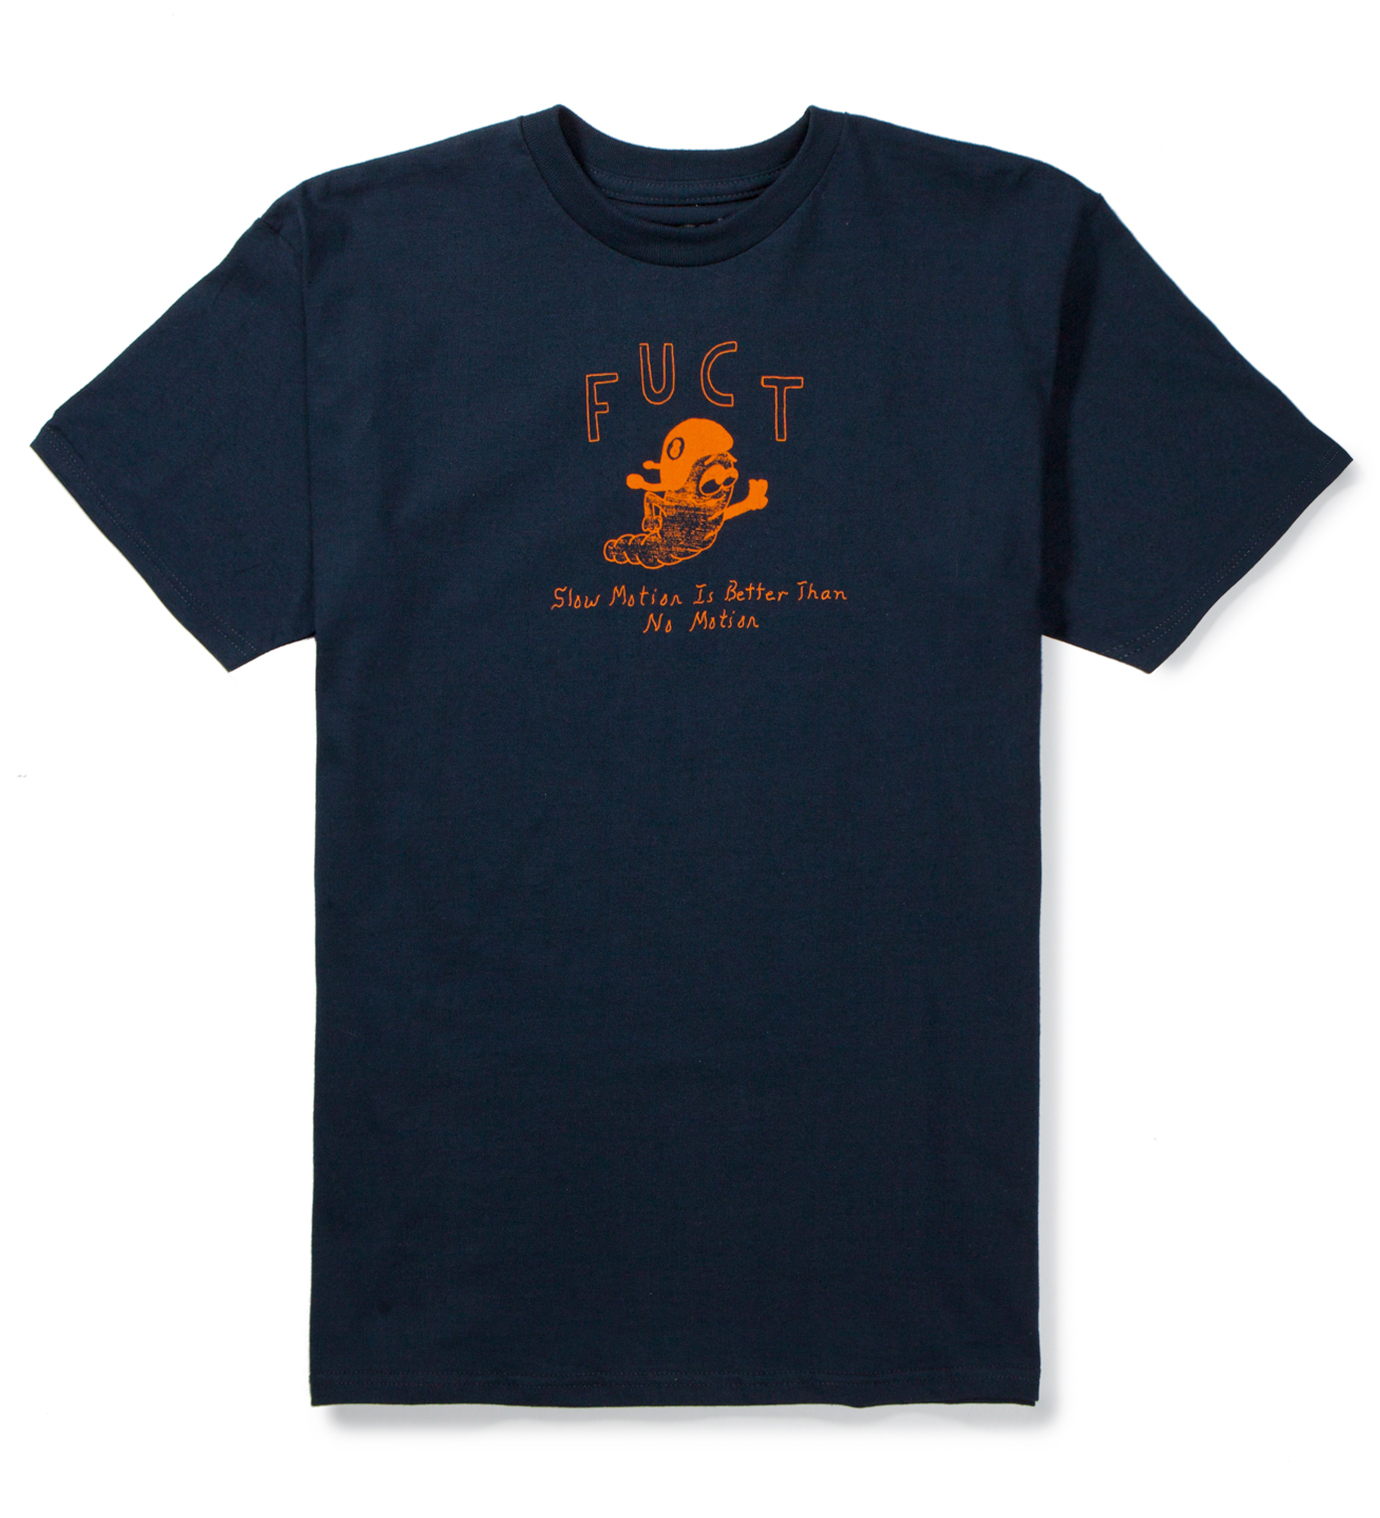 FUCT Navy Slow Motion T-Shirt